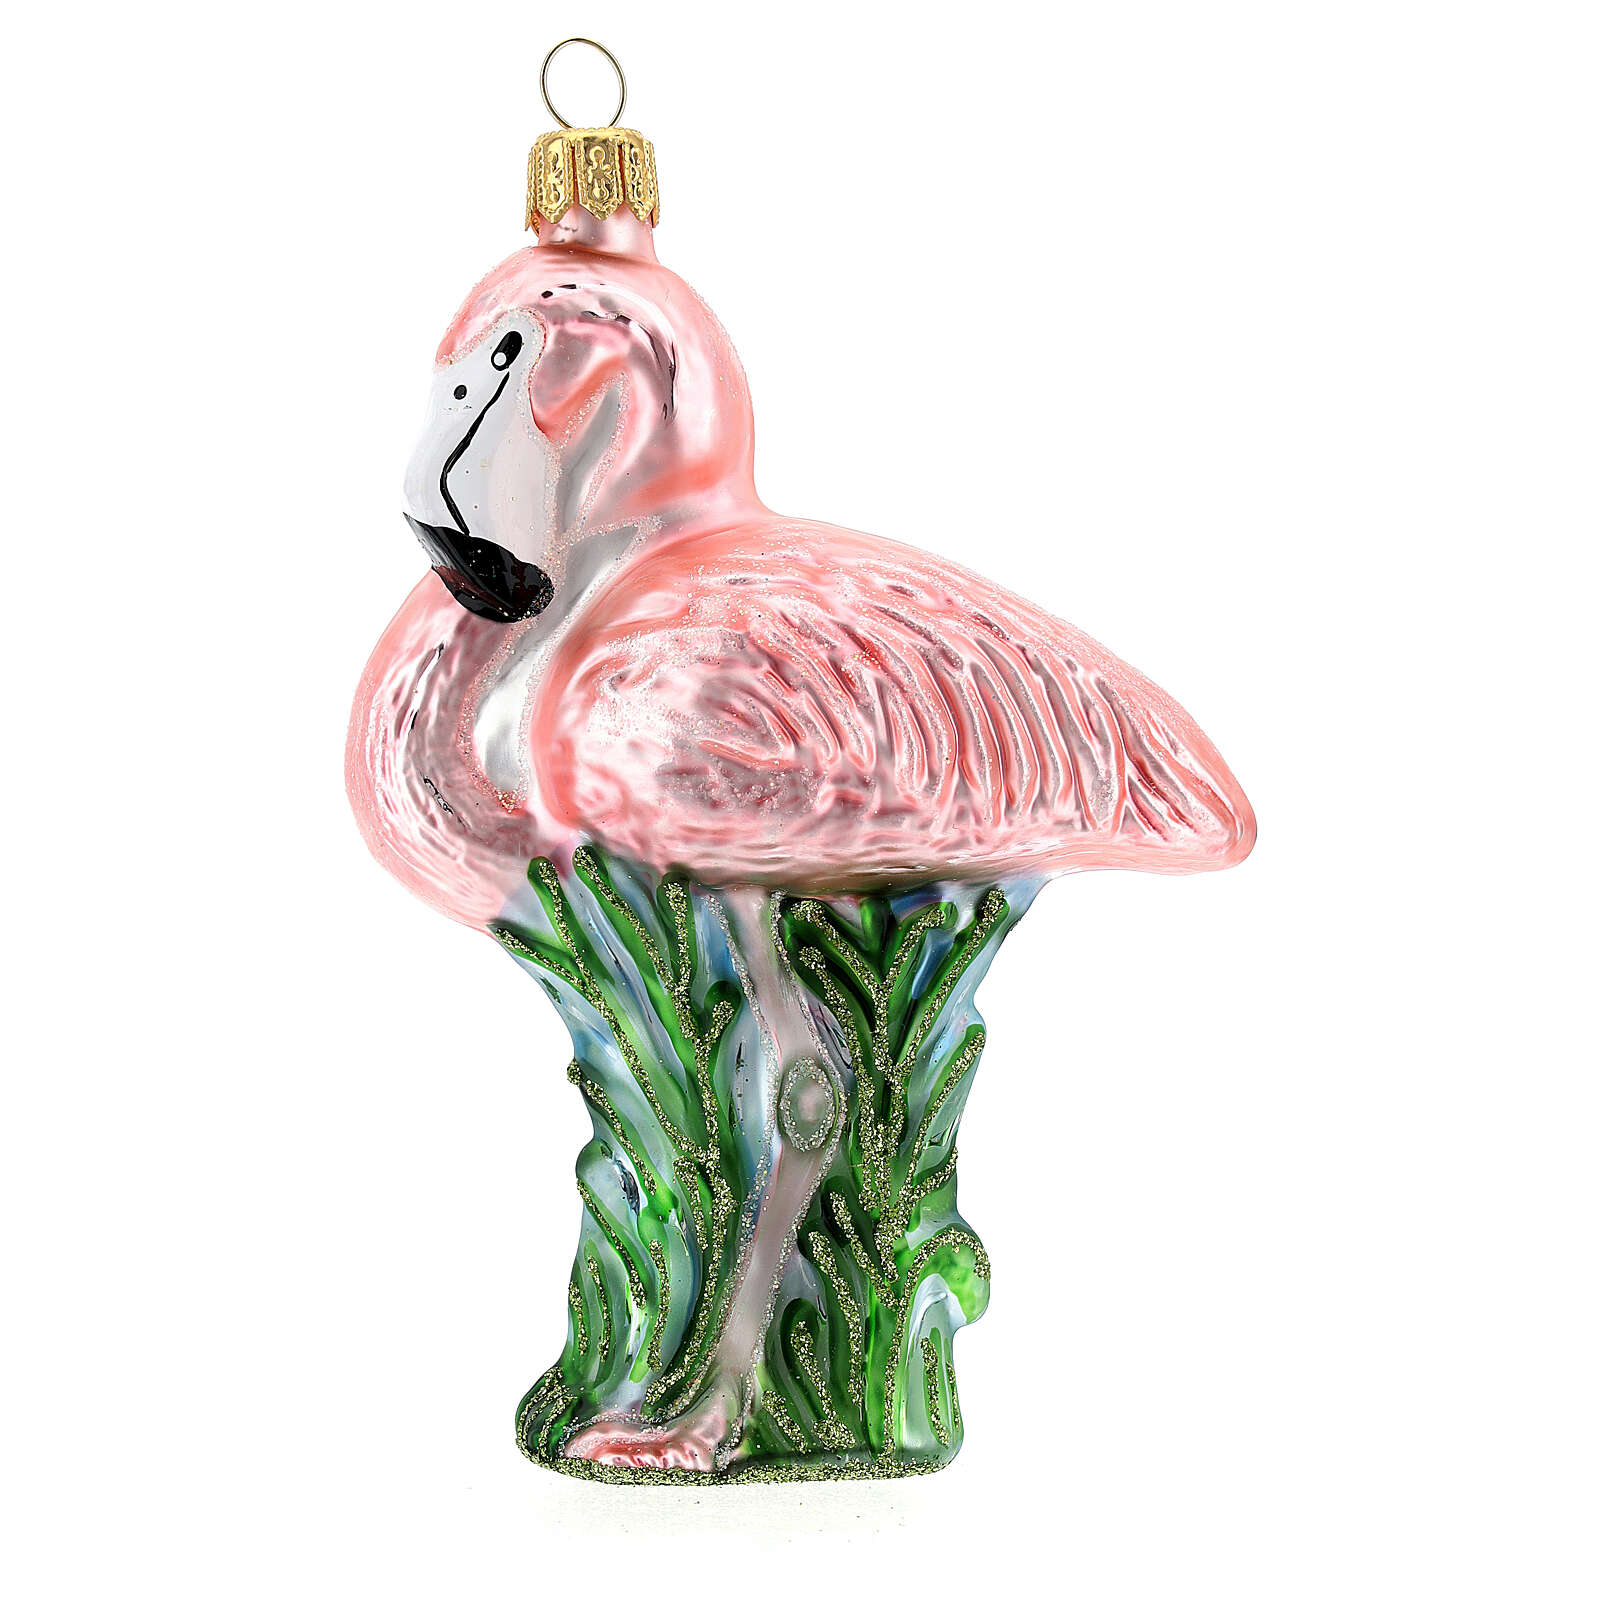 Blown glass Christmas ornament, flamingo 4